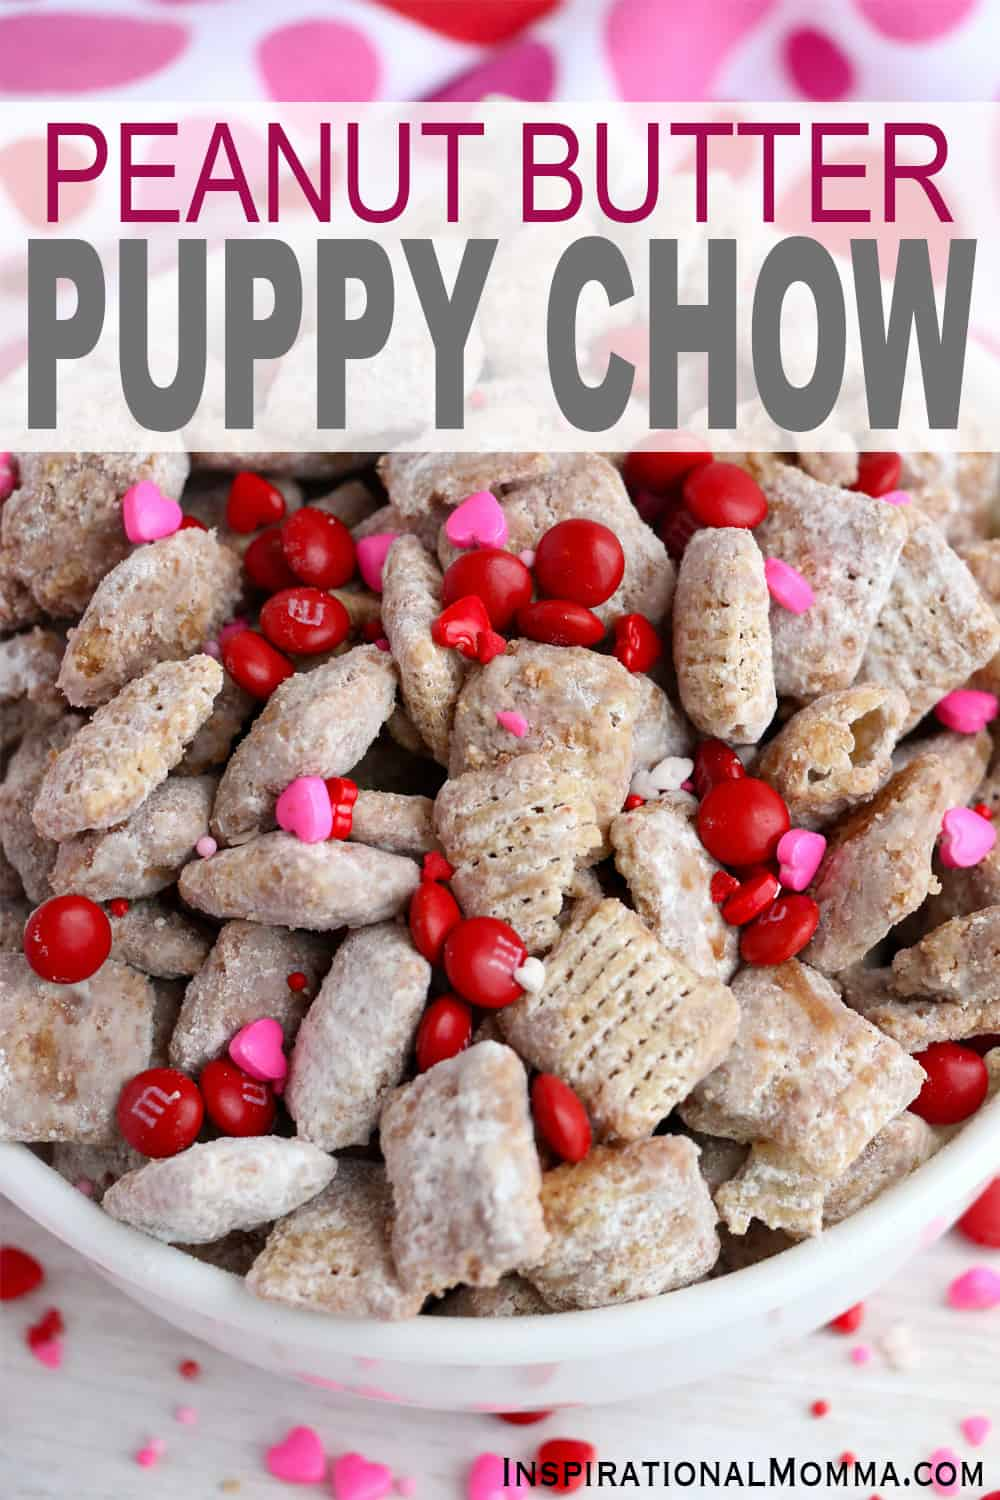 Peanut Butter Puppy Chow is a sweet snack coated in chocolate, peanut butter, butter, and vanilla then tossed in powdered sugar. #inspirationalmomma #peanutbutterpuppychow #puppychow #muddybuddies #chocolate #peanutbutter #sweetsnacks #easy #simple #recipe